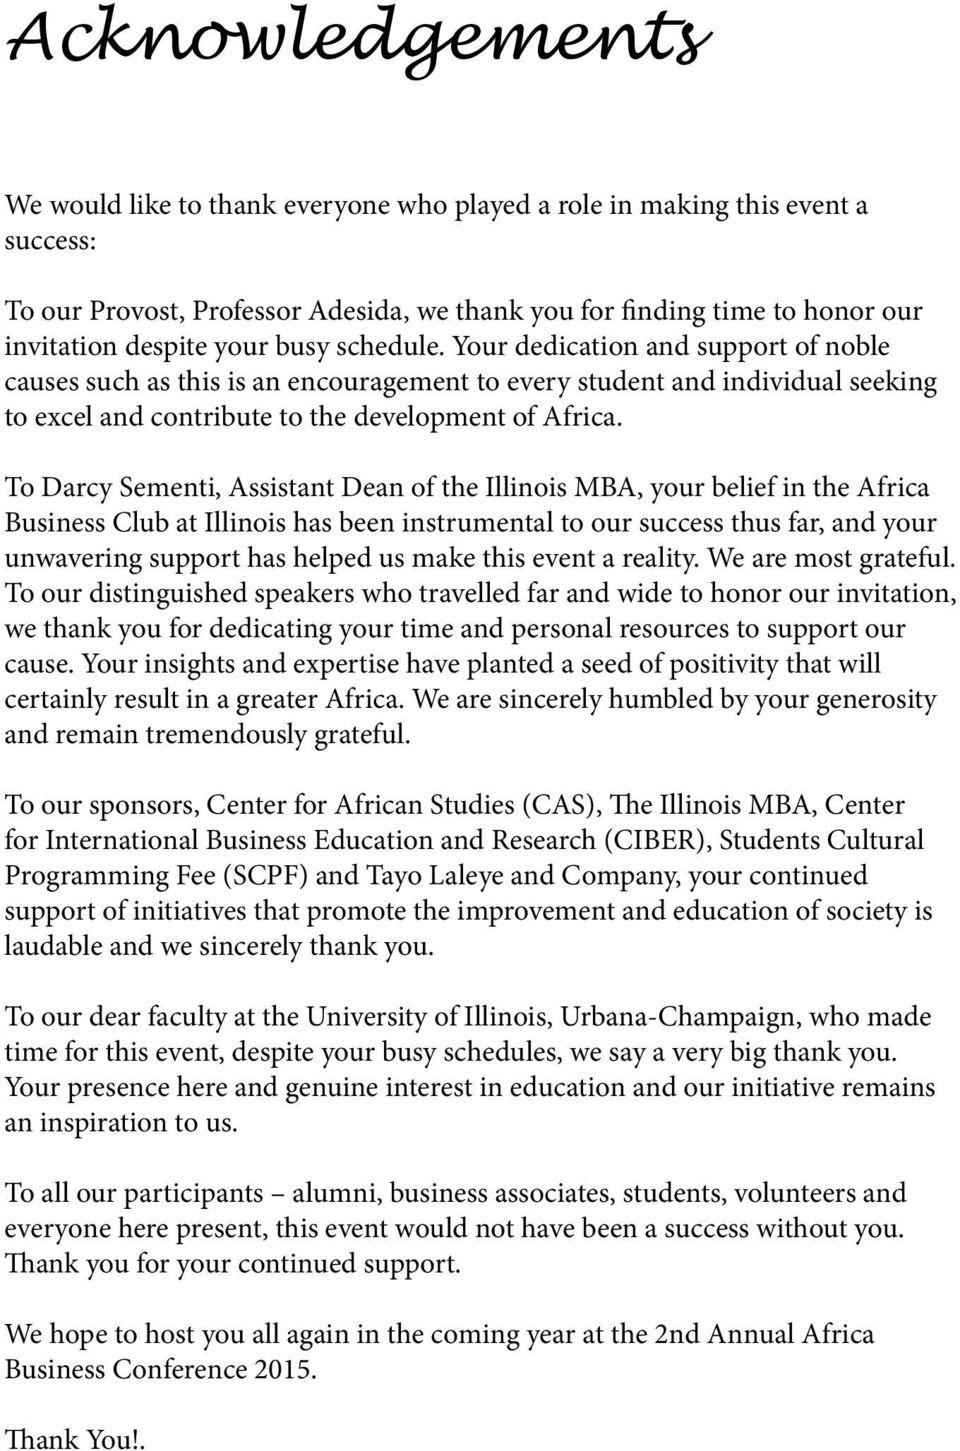 To Darcy Sementi, Assistant Dean of the Illinois MBA, your belief in the Africa Business Club at Illinois has been instrumental to our success thus far, and your unwavering support has helped us make